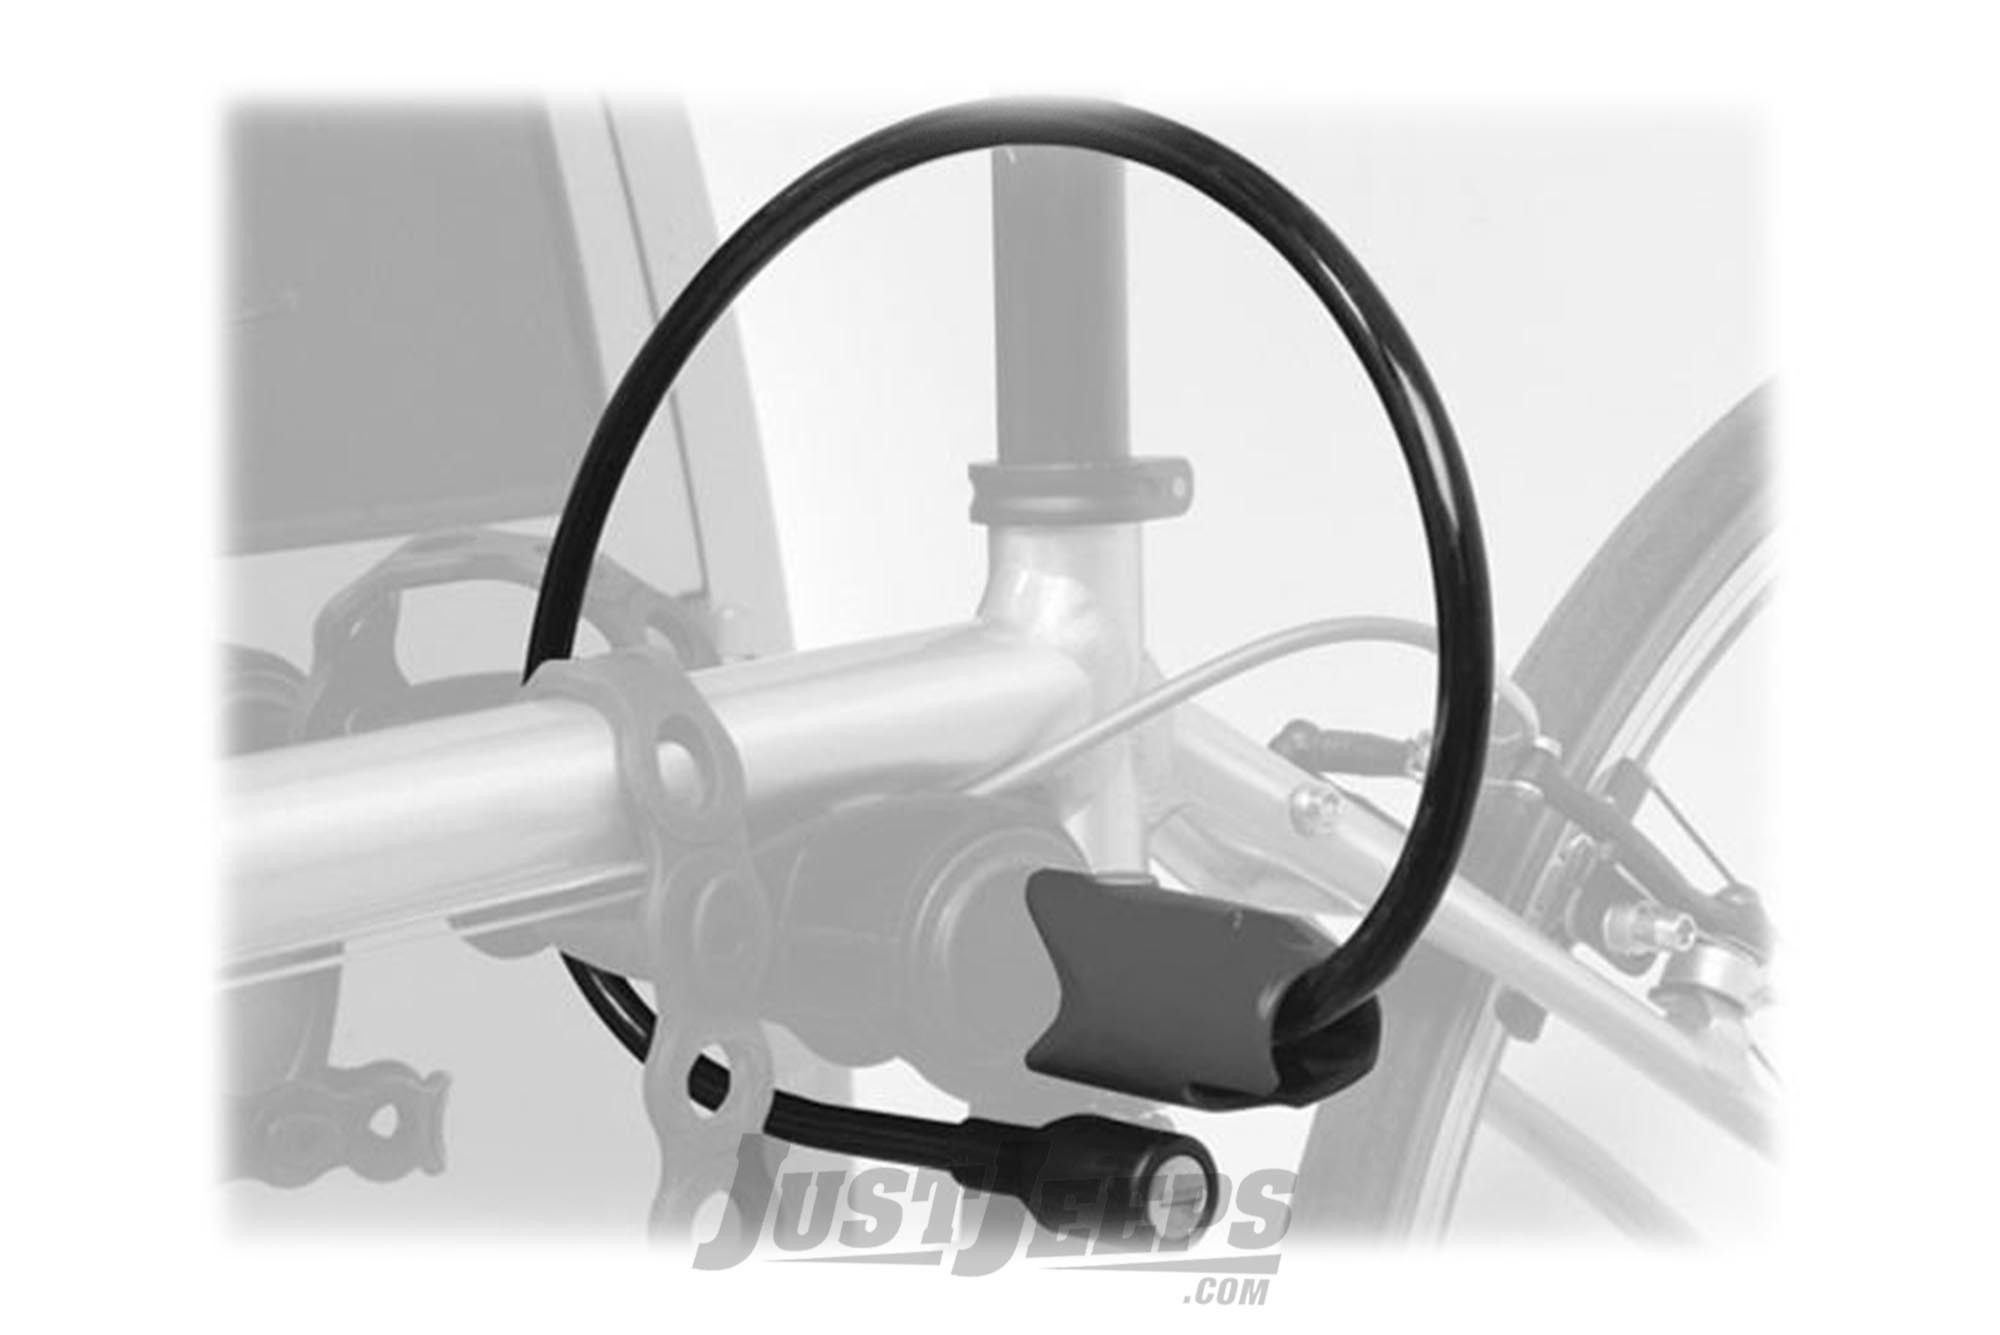 YAKIMA DeadLock Rack & Bike Lock 8002411